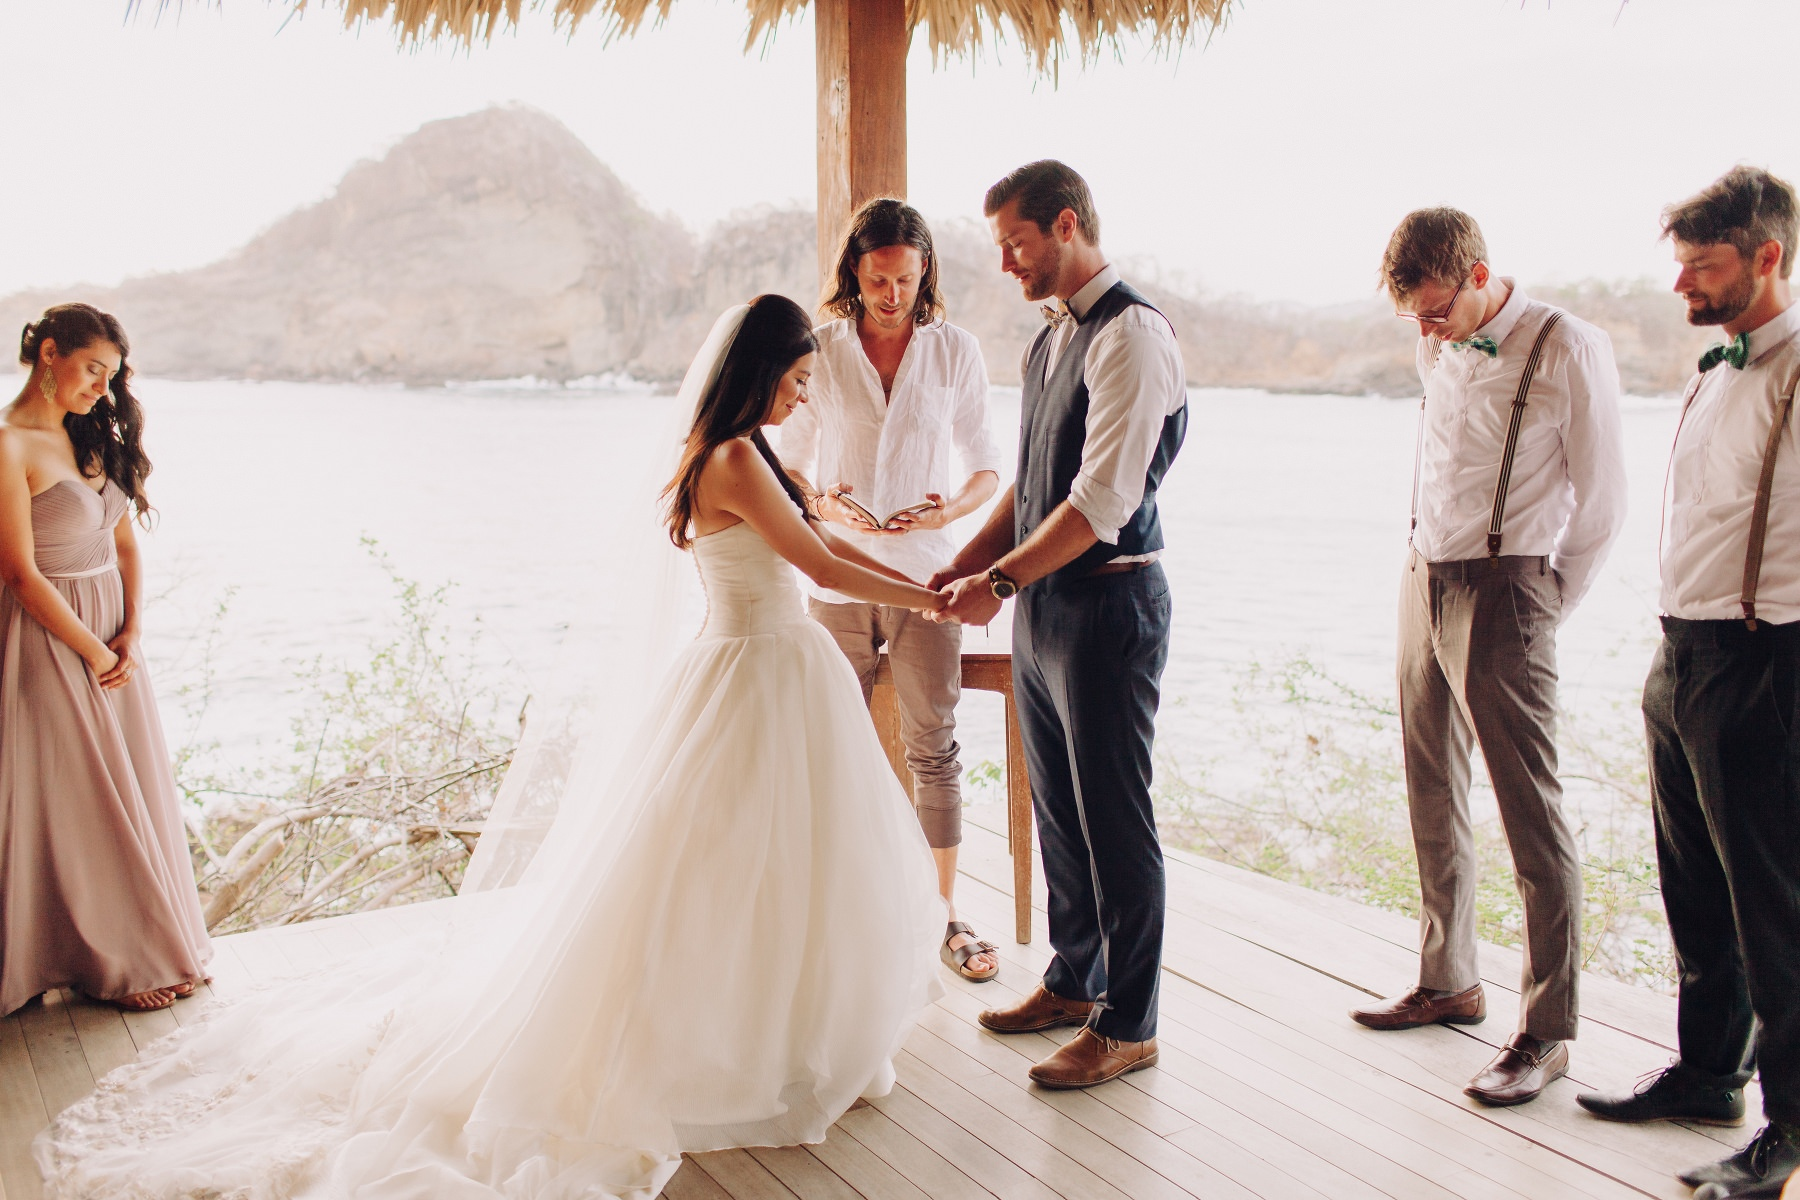 Destination Beach wedding  in Nicaragua. Wedding photography